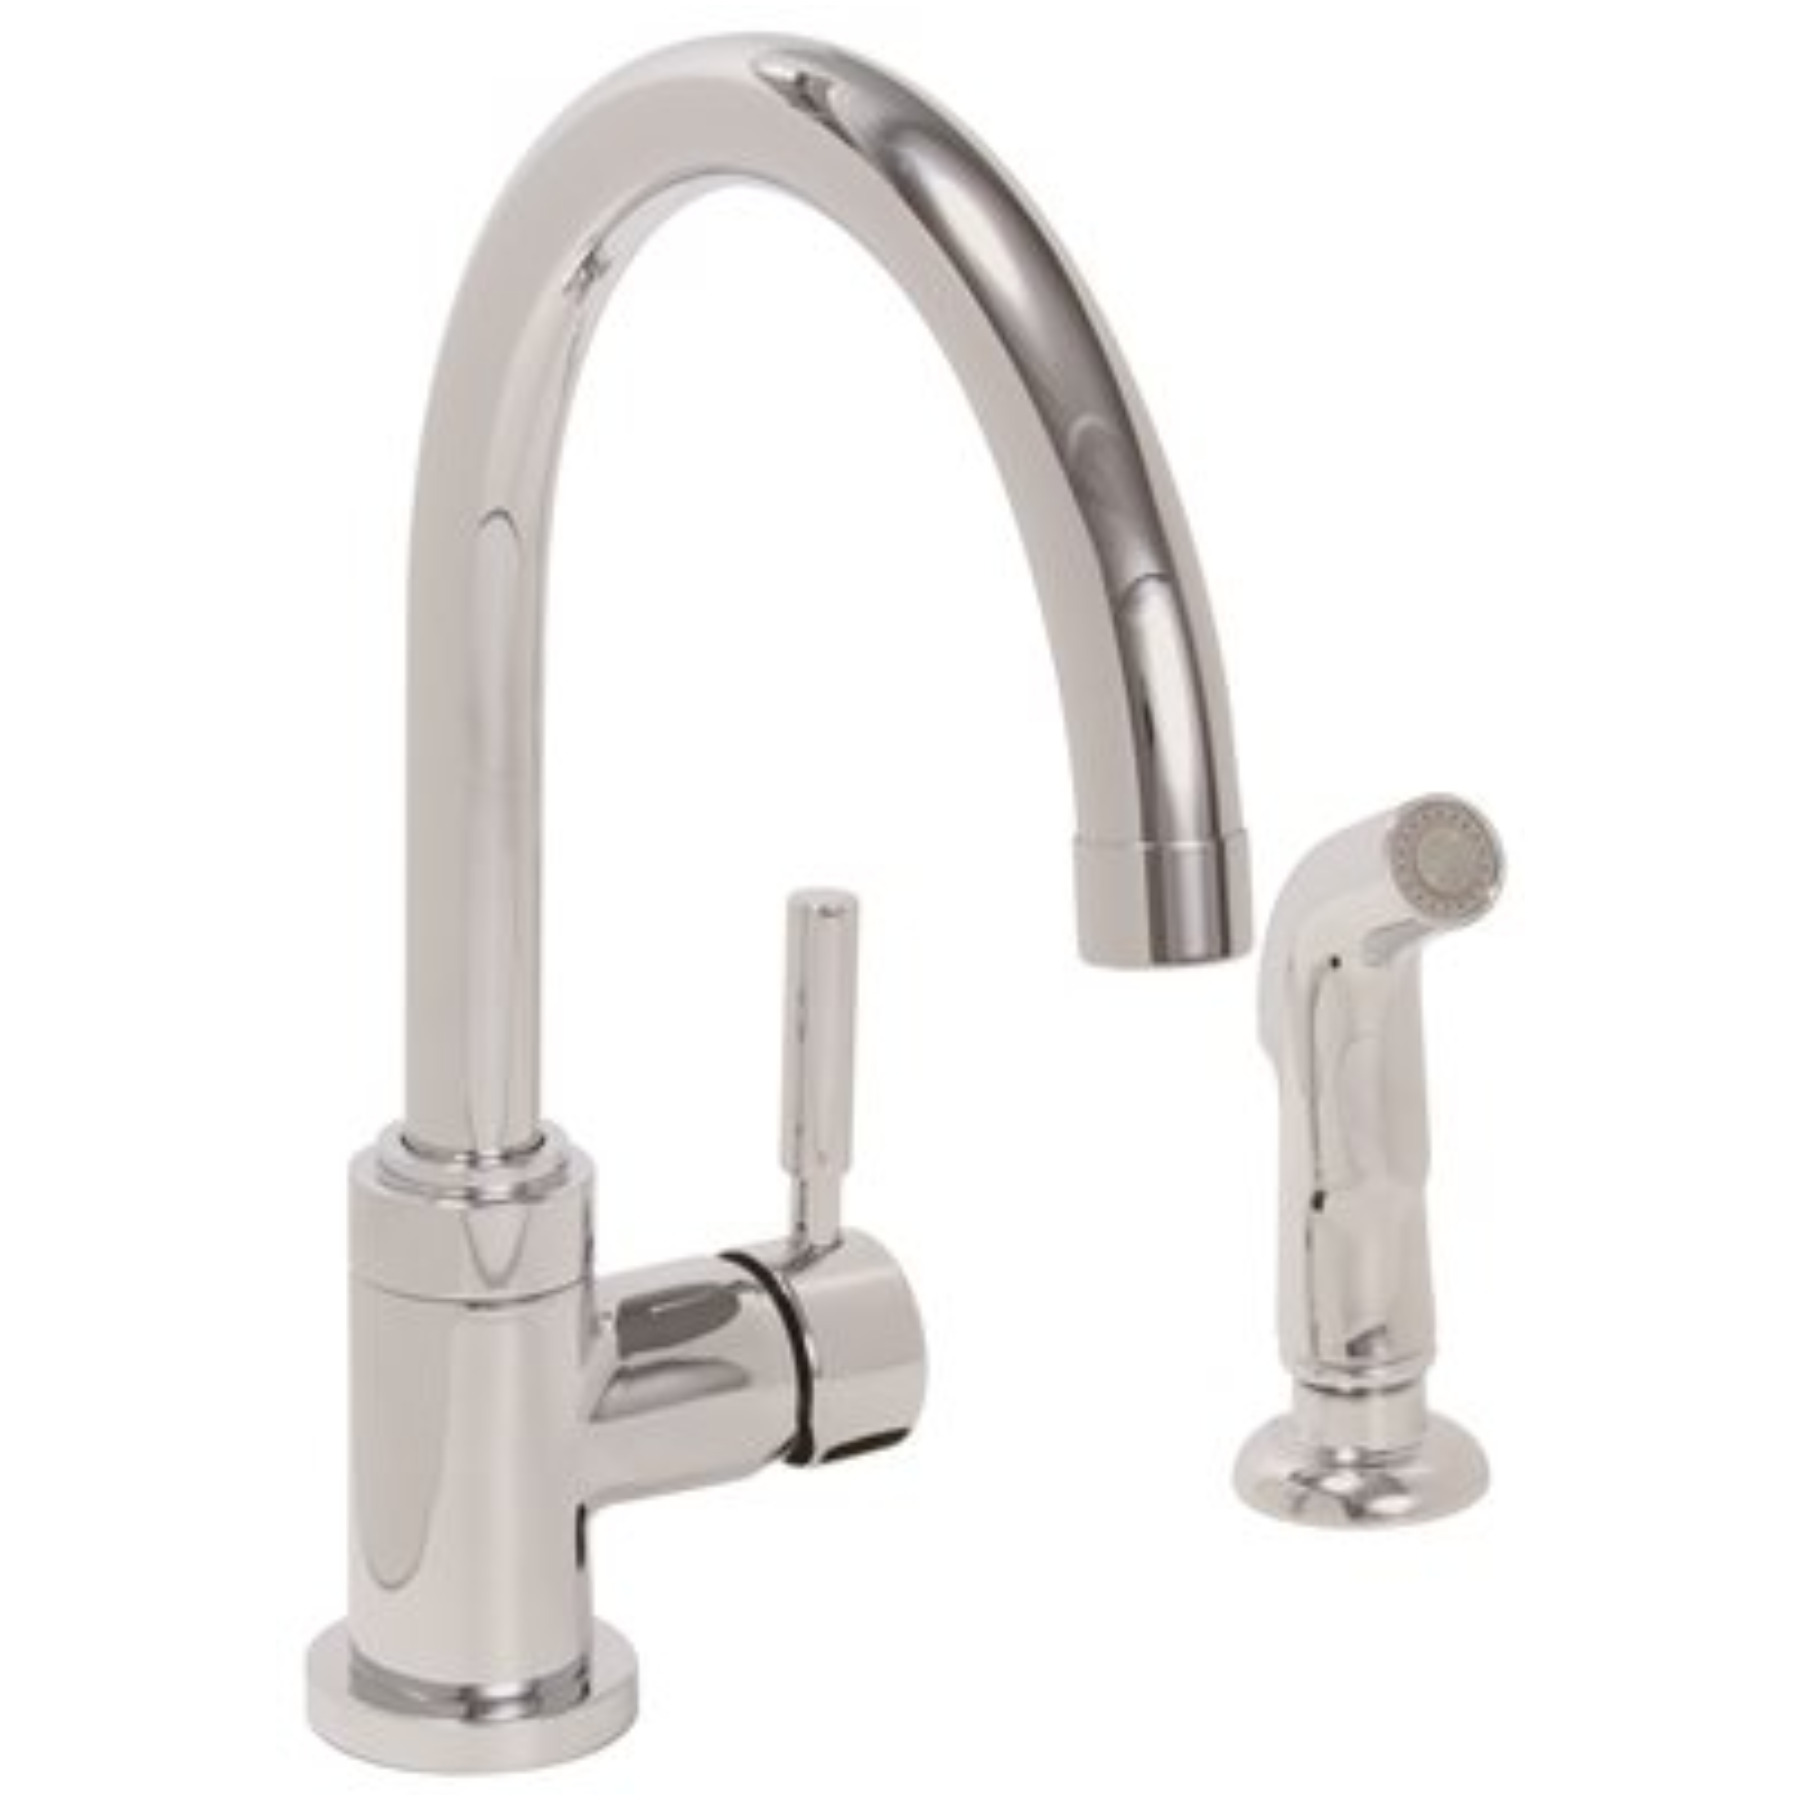 ESSEN� KITCHEN FAUCET WITH SPRAY AND SINGLE METAL LEVER HANDLE, CHROME